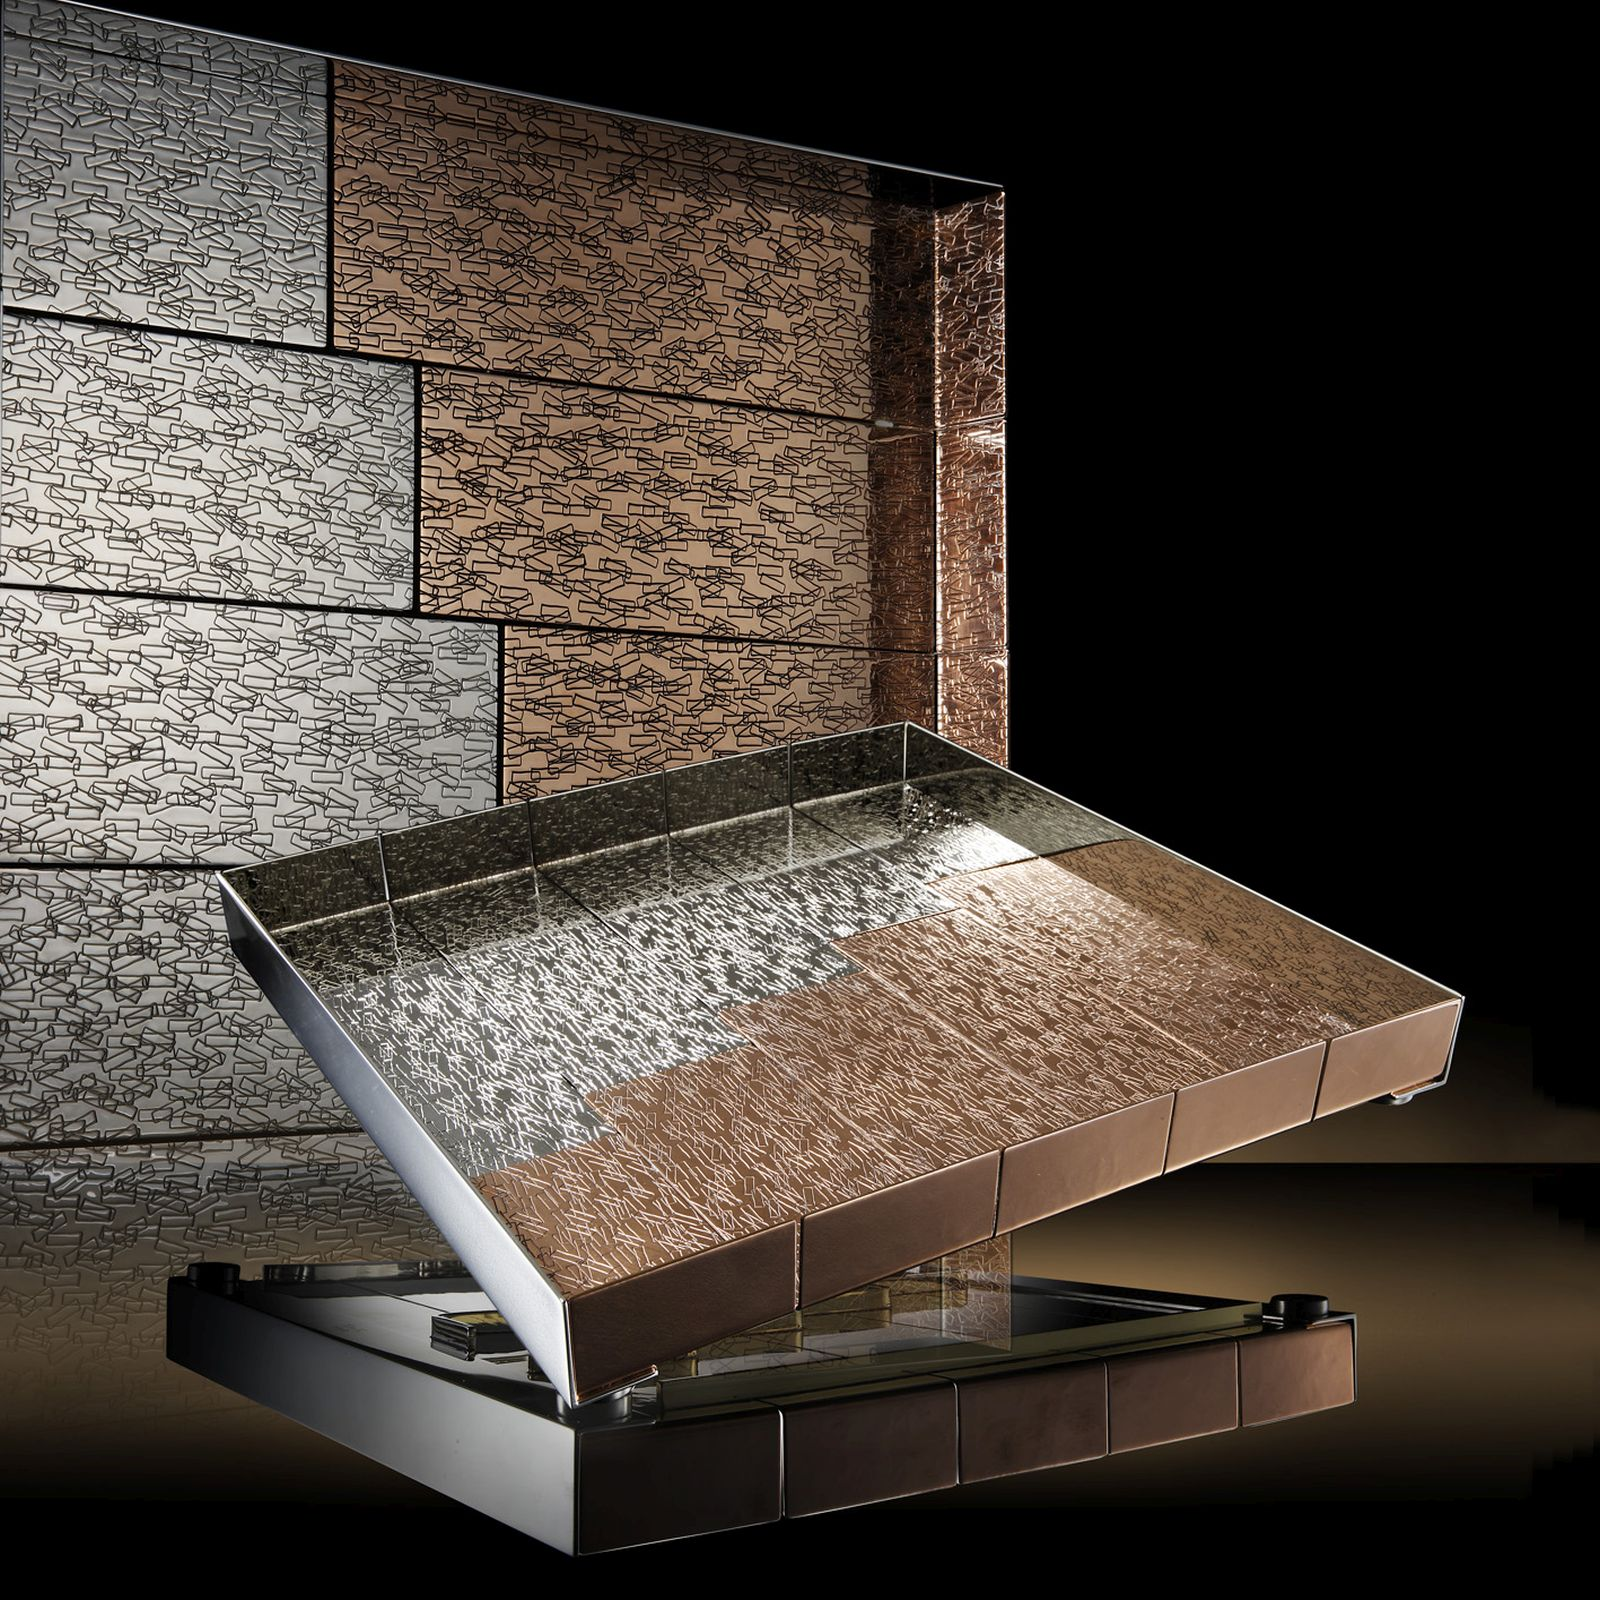 Accordi Tray - Square Tray in copper and white bronze. This tray is characterized by the rectangular motif.  The Accordi square tray is characterized by skilled and expert workmanship that combines different materials and processes creating a contemporary style with a unique design. | Matter of Stuff